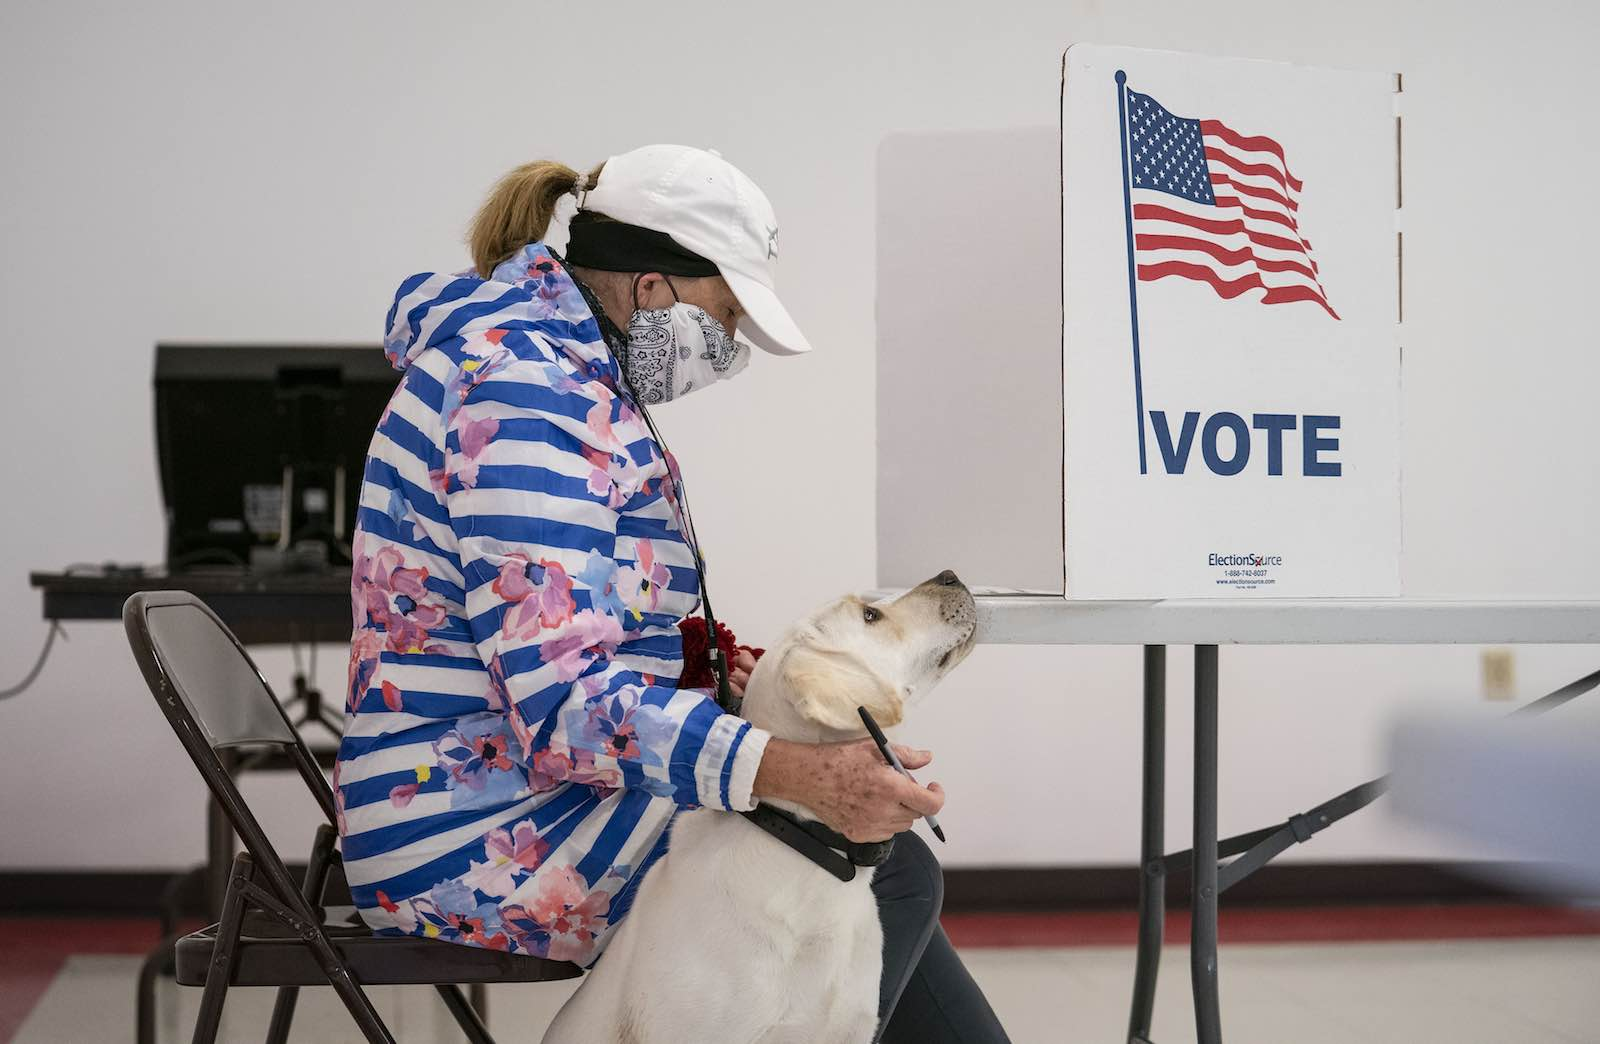 The Wisconsin primary, 7 April (Alex Kormann/Star Tribune via Getty Images)